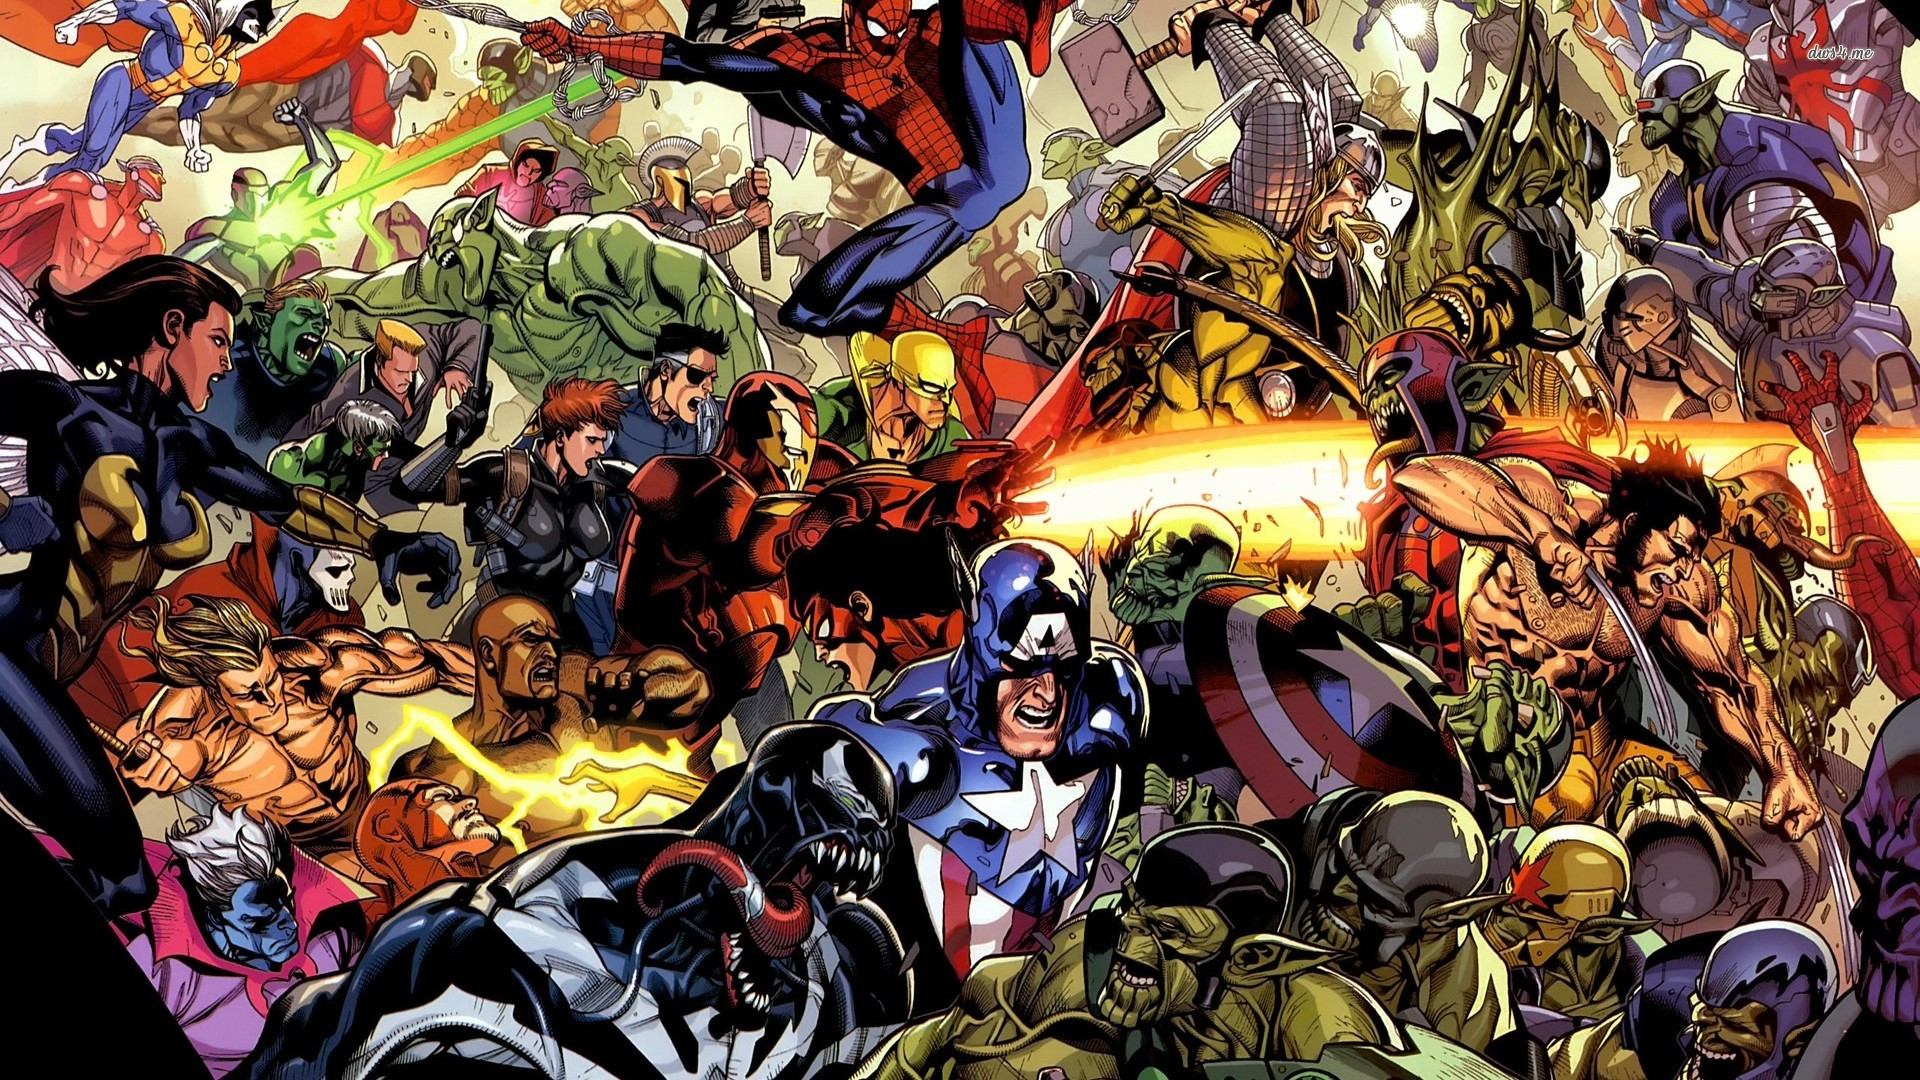 Marvel Superheroes Wallpaper 21944 Wallpaper Wallpaper hd 1920x1080